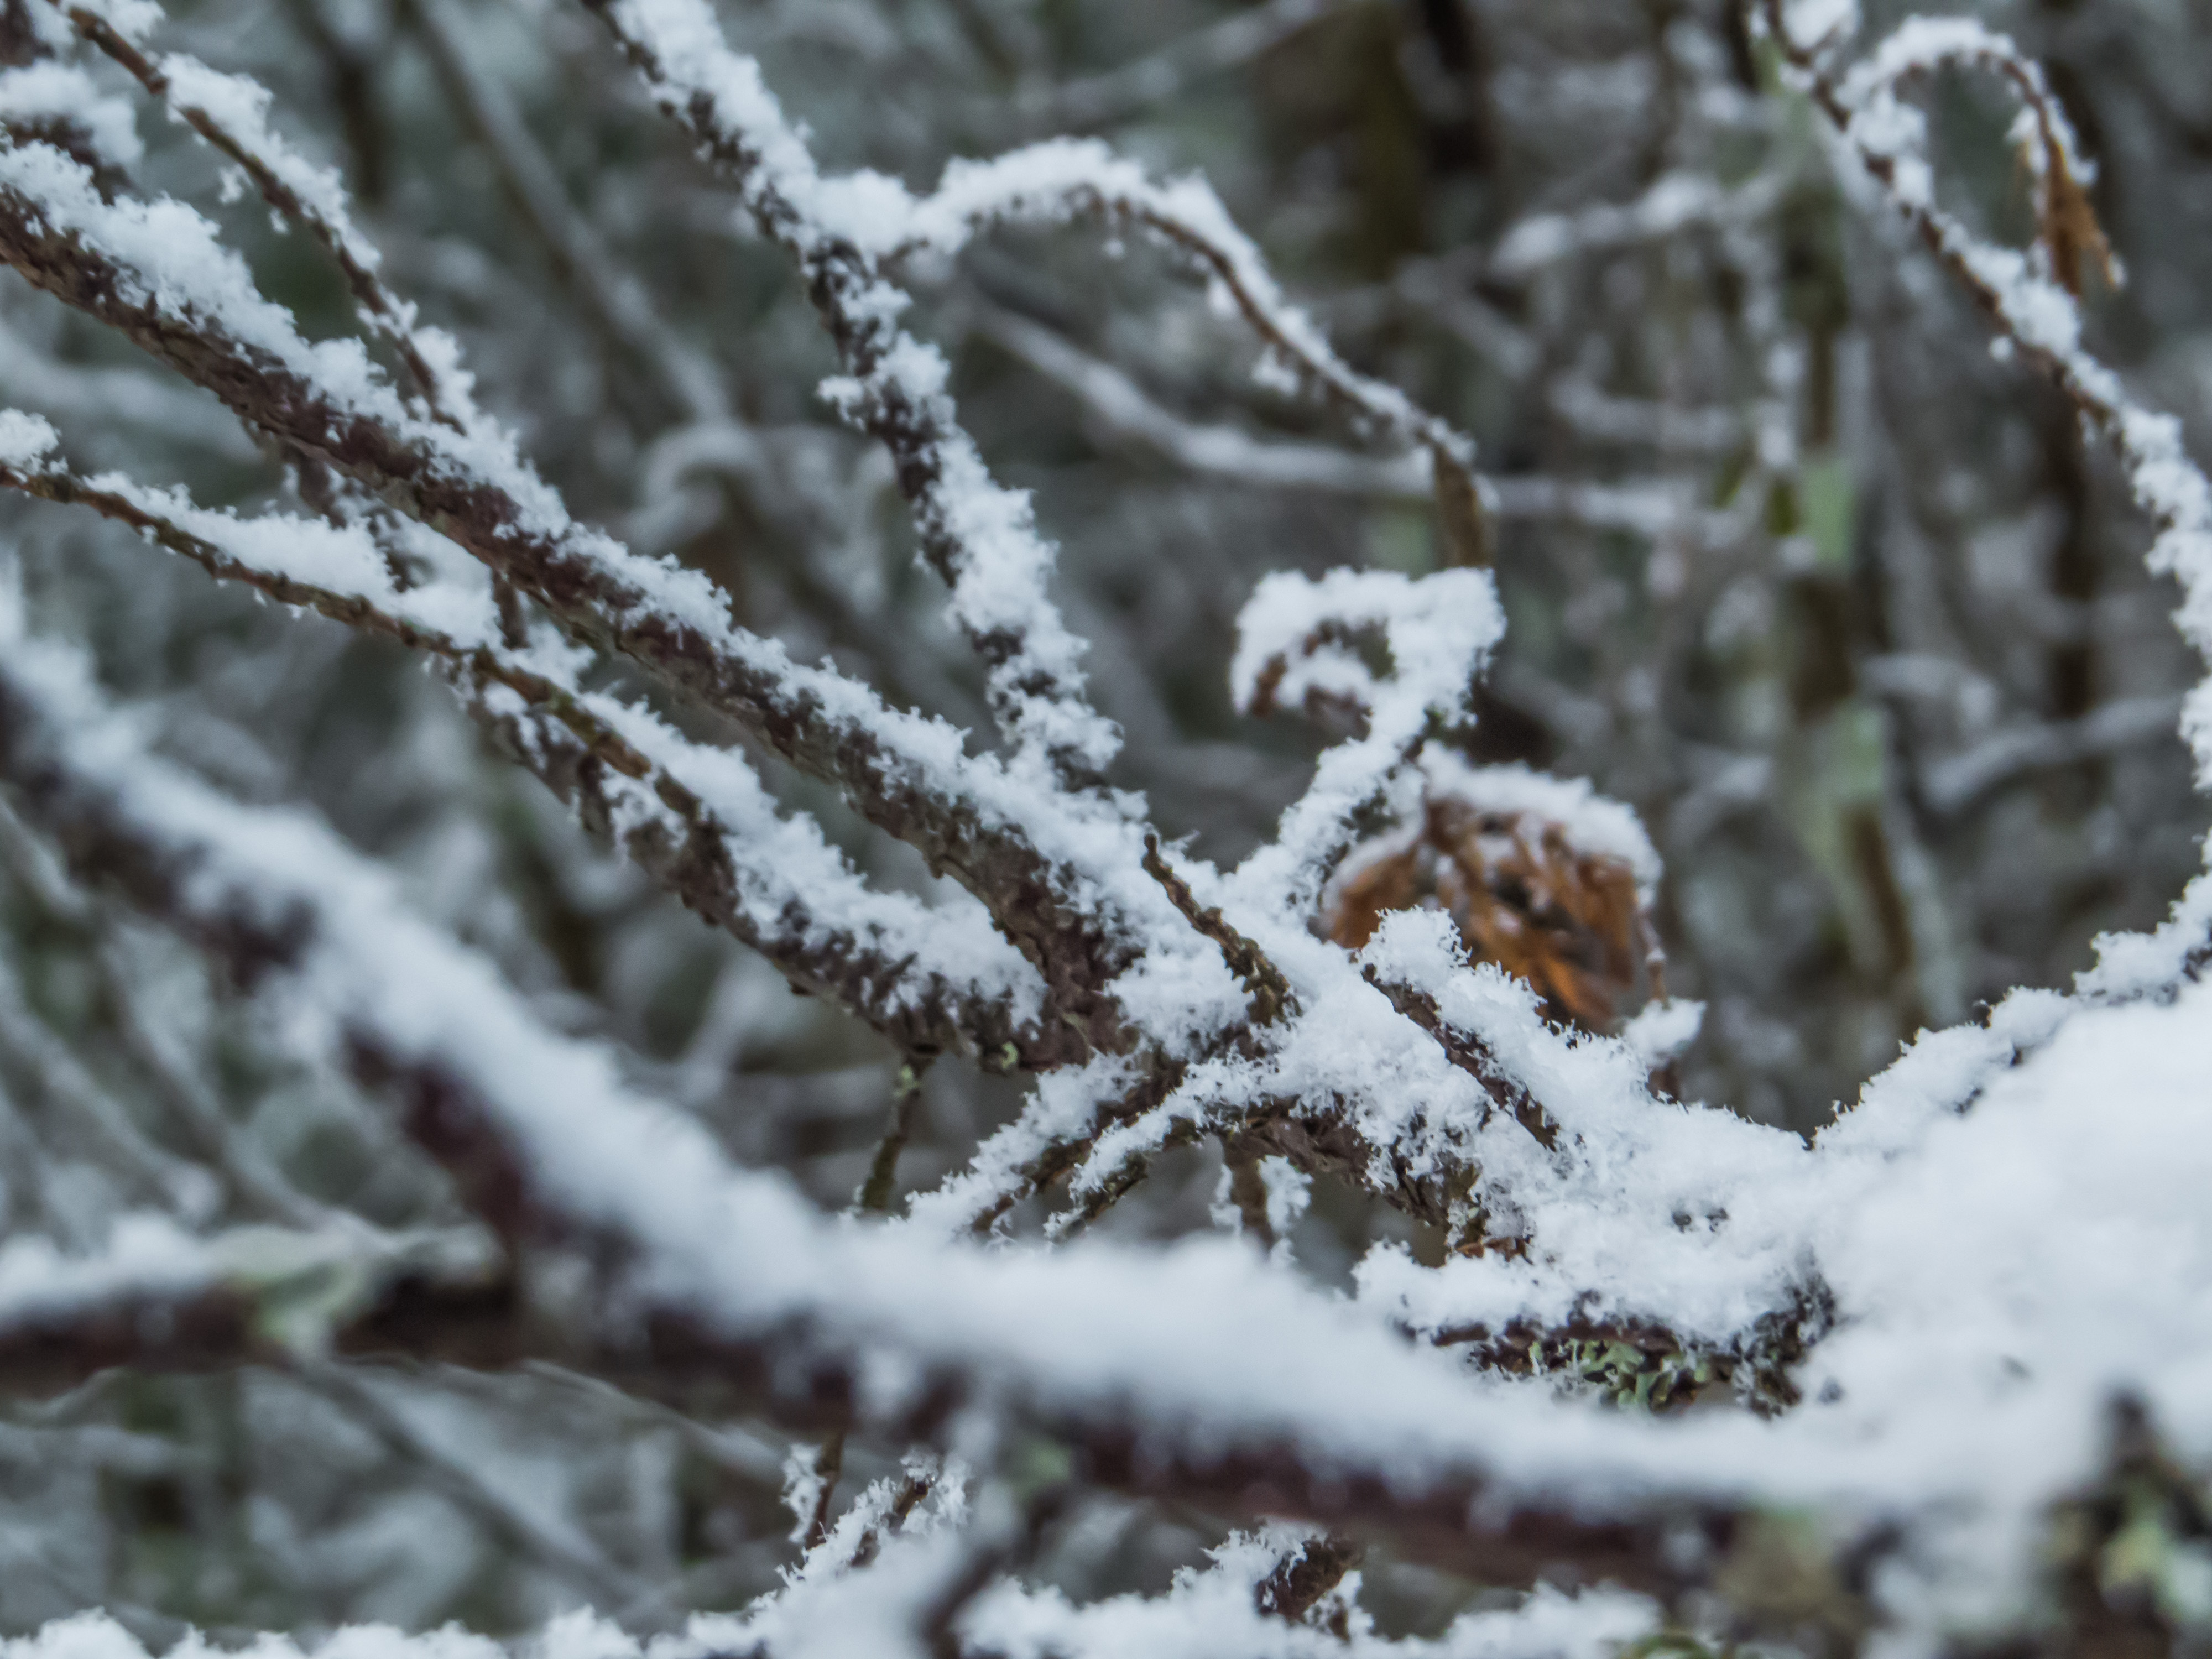 Snowy Forest, Woods, Snow, Nature, Plant, HQ Photo